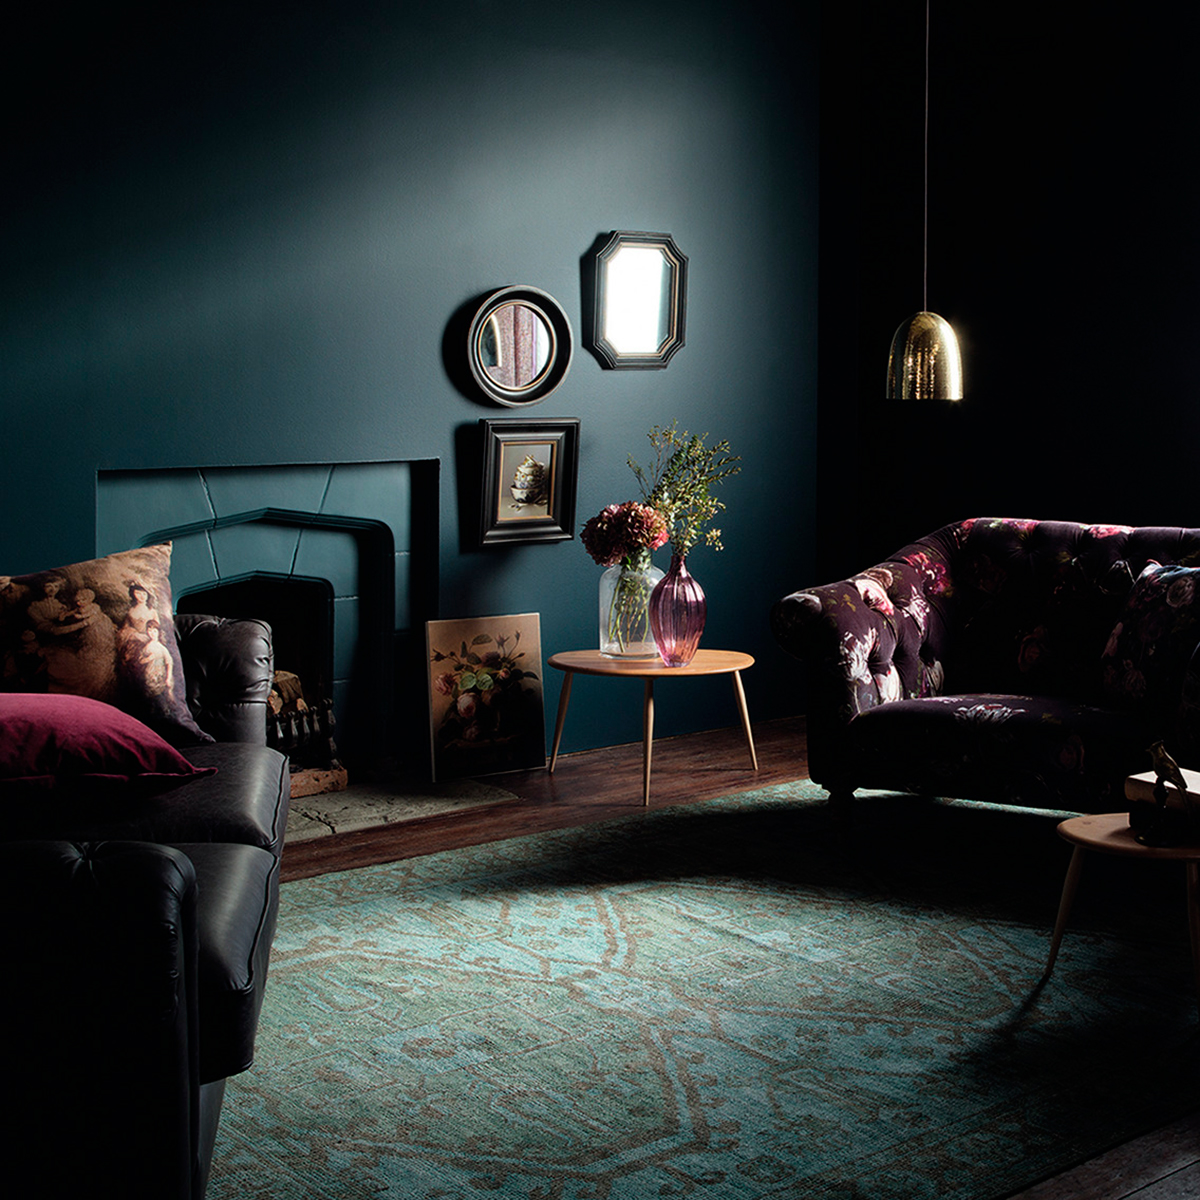 Marks spencer autumn winter 2014 home decorating ideas for Living room decor ideas 2014